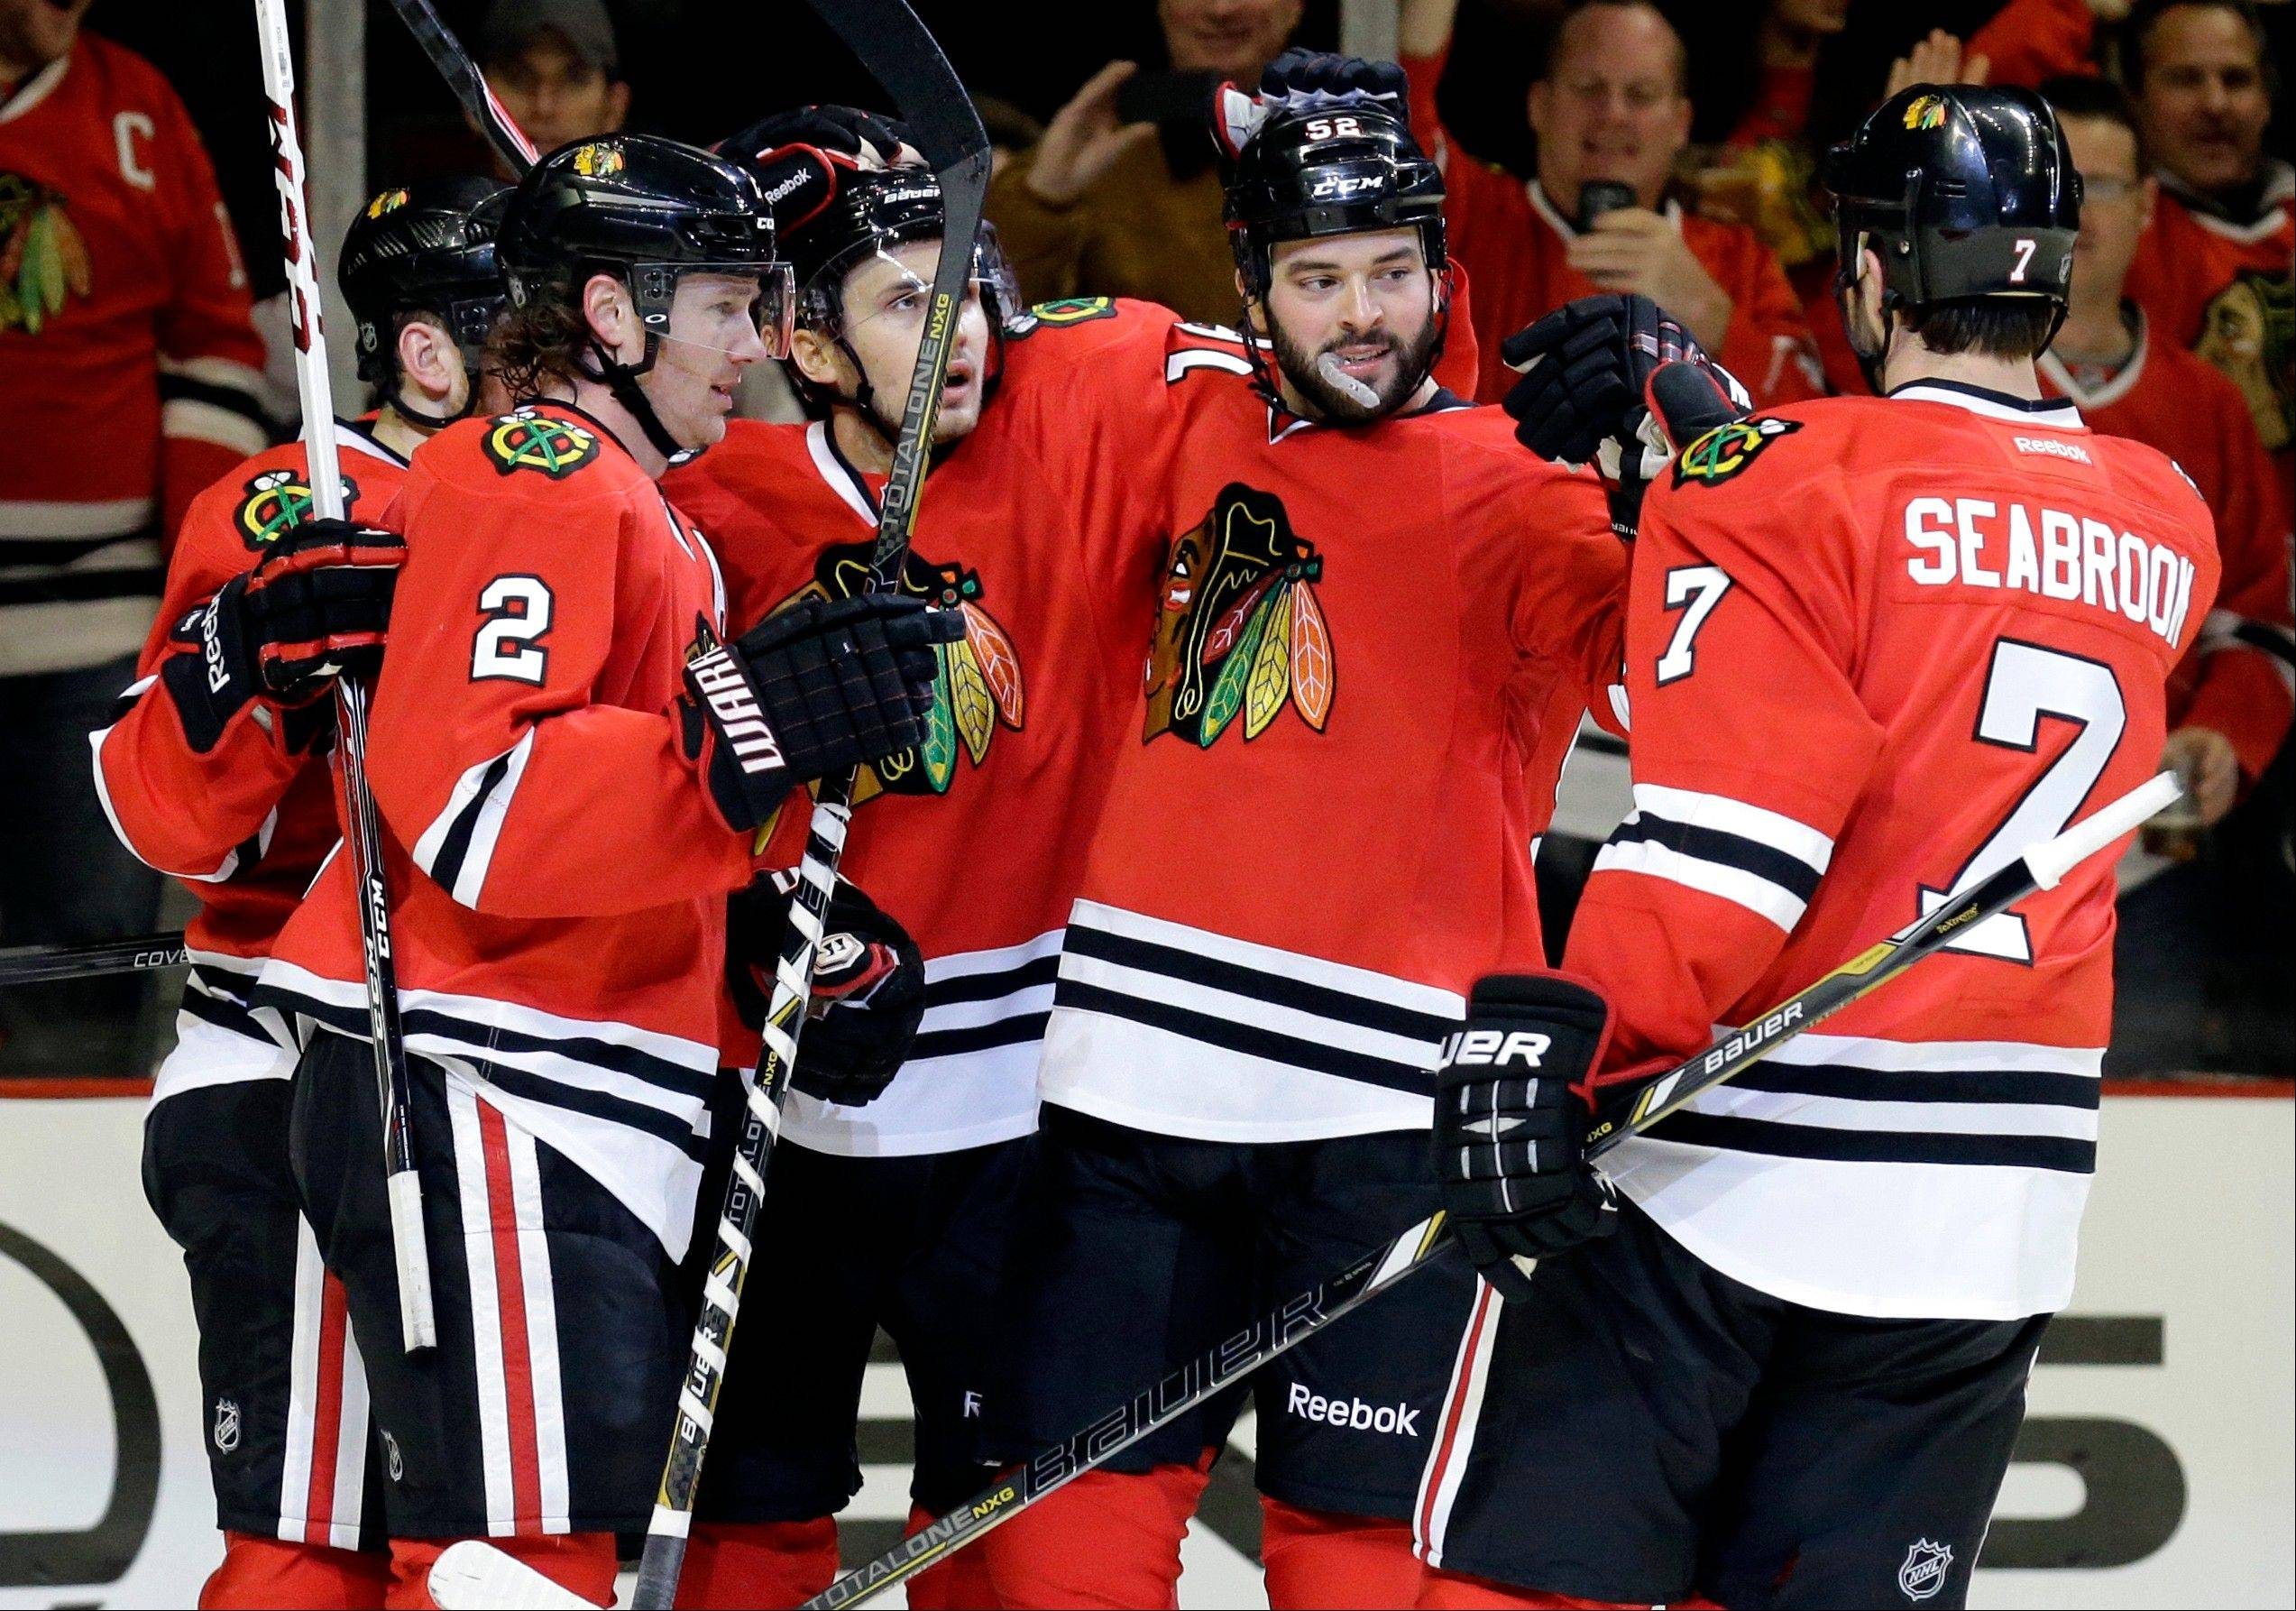 Brandon Bollig, second from right, celebrates with teammates after scoring a goal in Sunday's victory over Boston. Bollig says the Hawks are excited about Wednesday night's meeting with the Red Wings at Detroit.